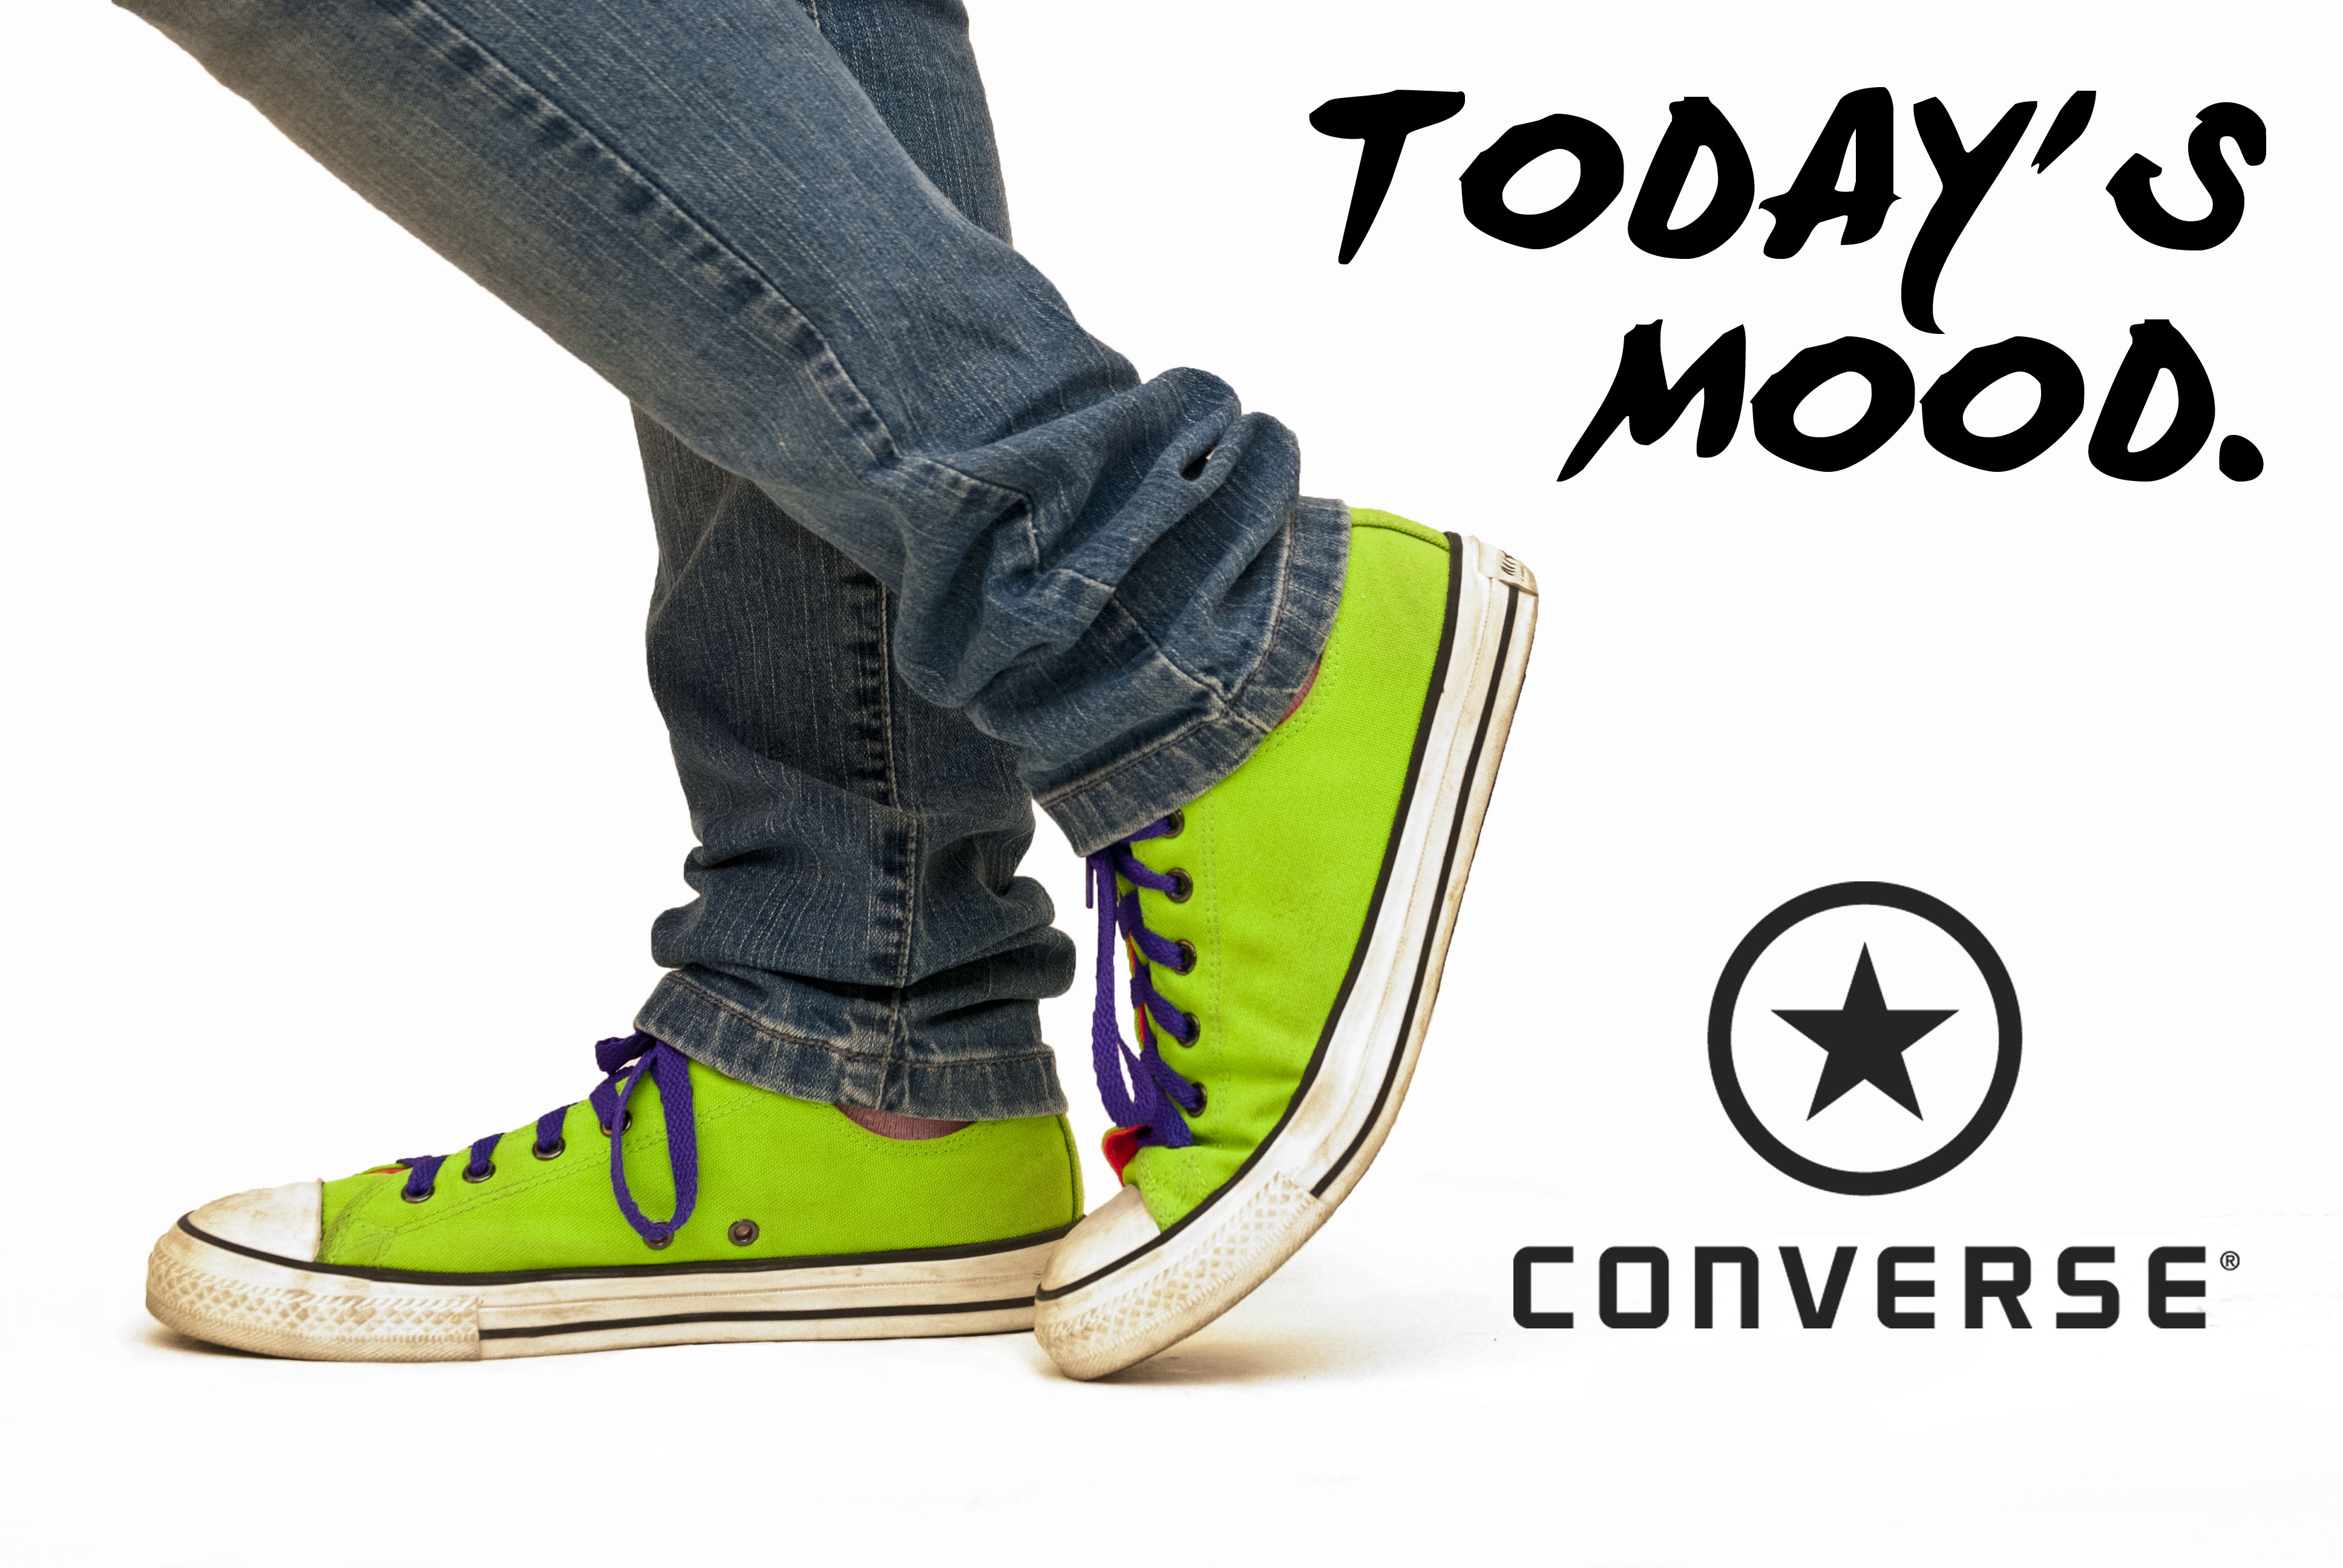 253a8cd6322a Converse Advertising by hottempered-chan Converse Advertising by  hottempered-chan